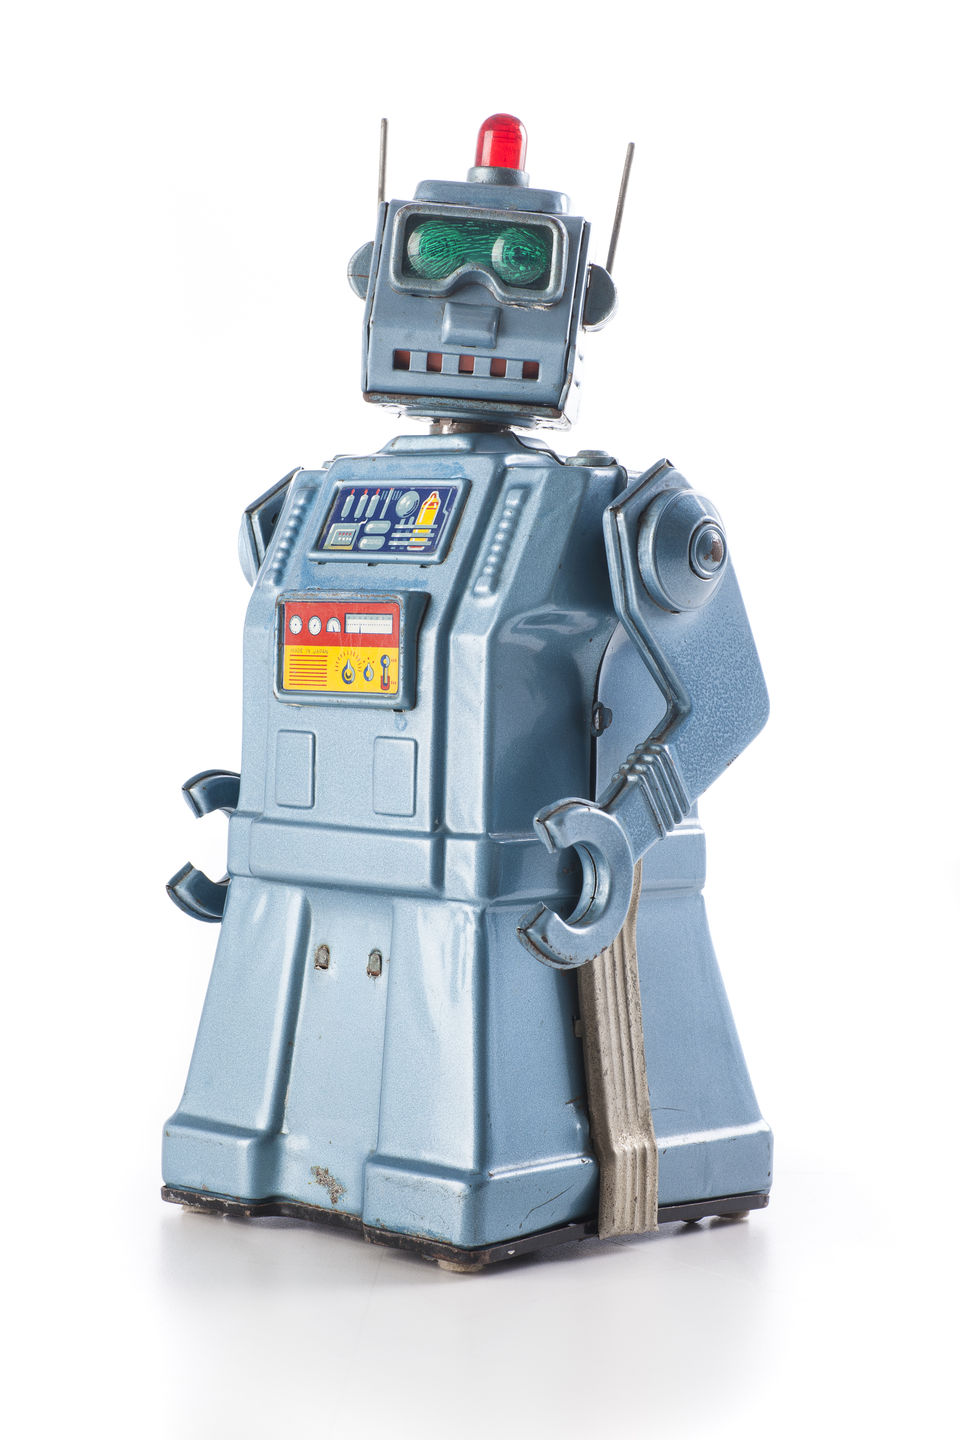 A metal toy robot from the 50s.